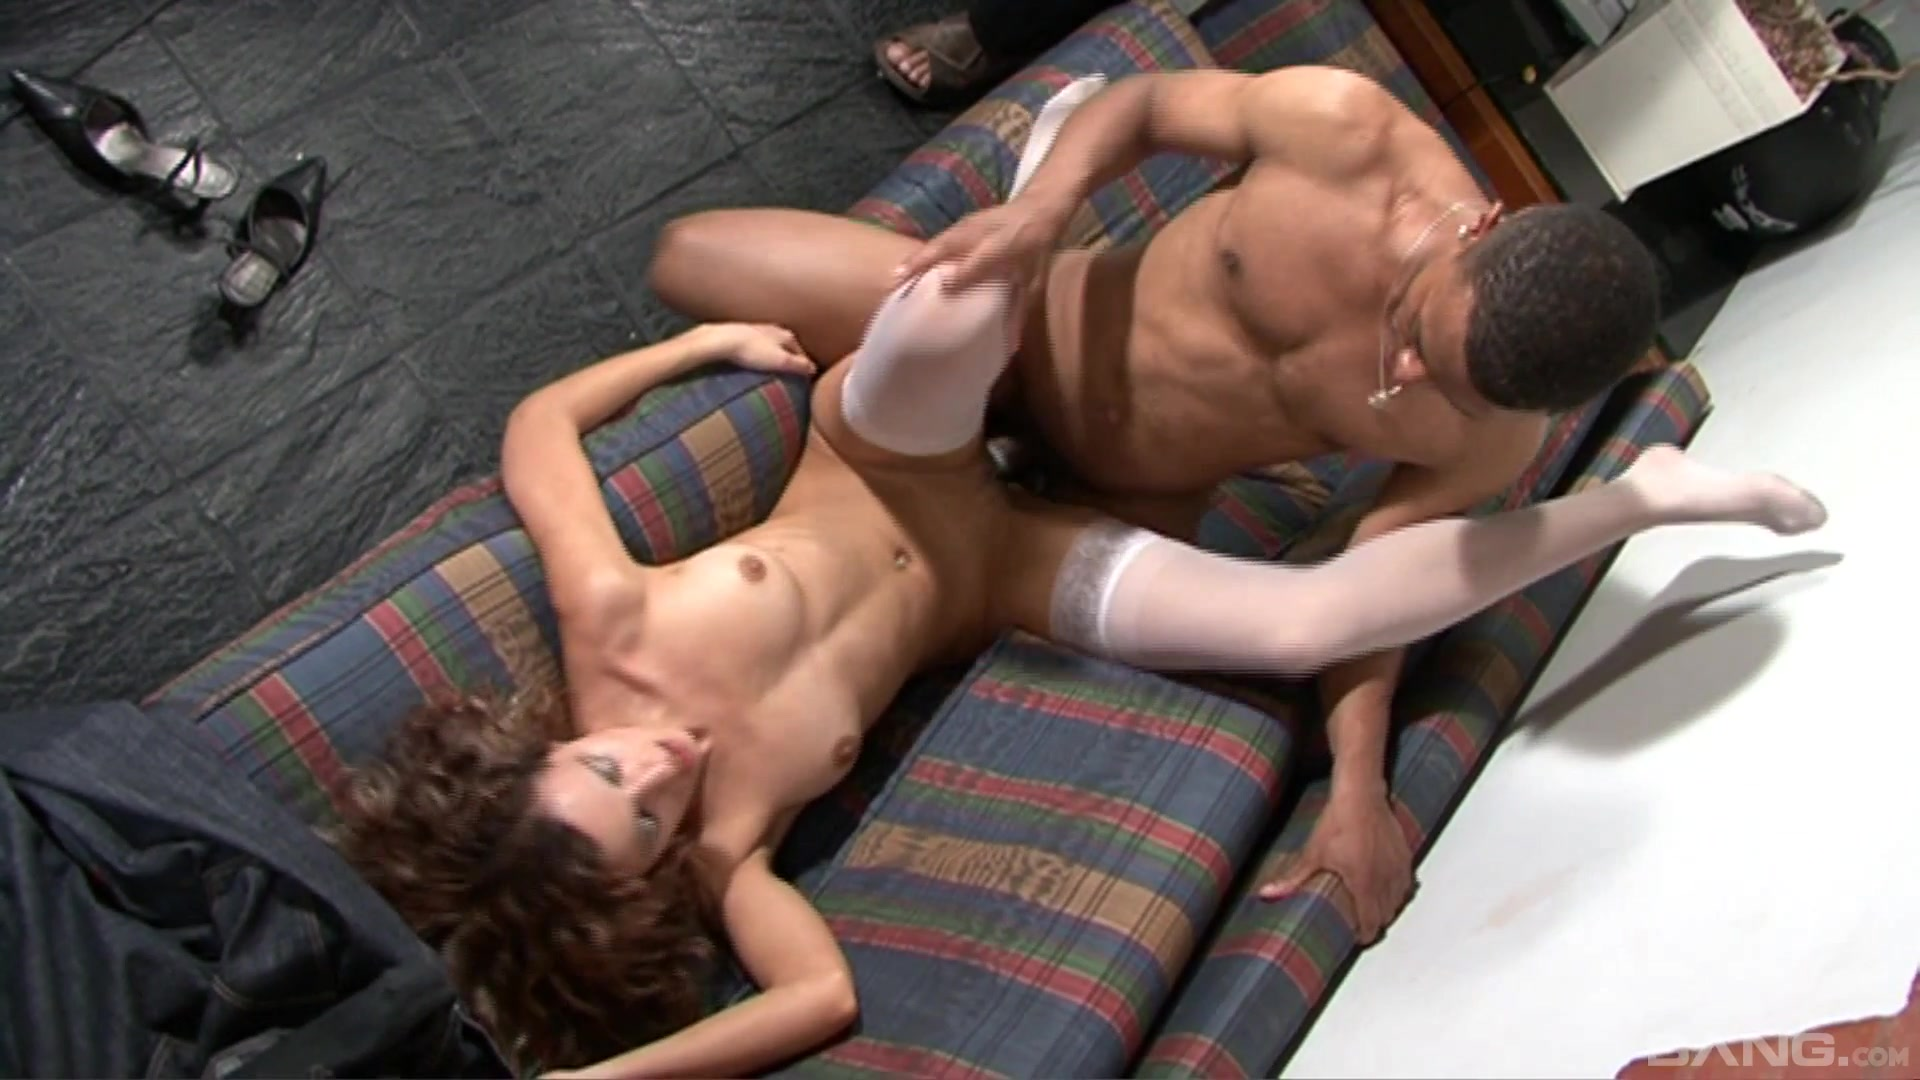 porn video 2020 French mature anal hd